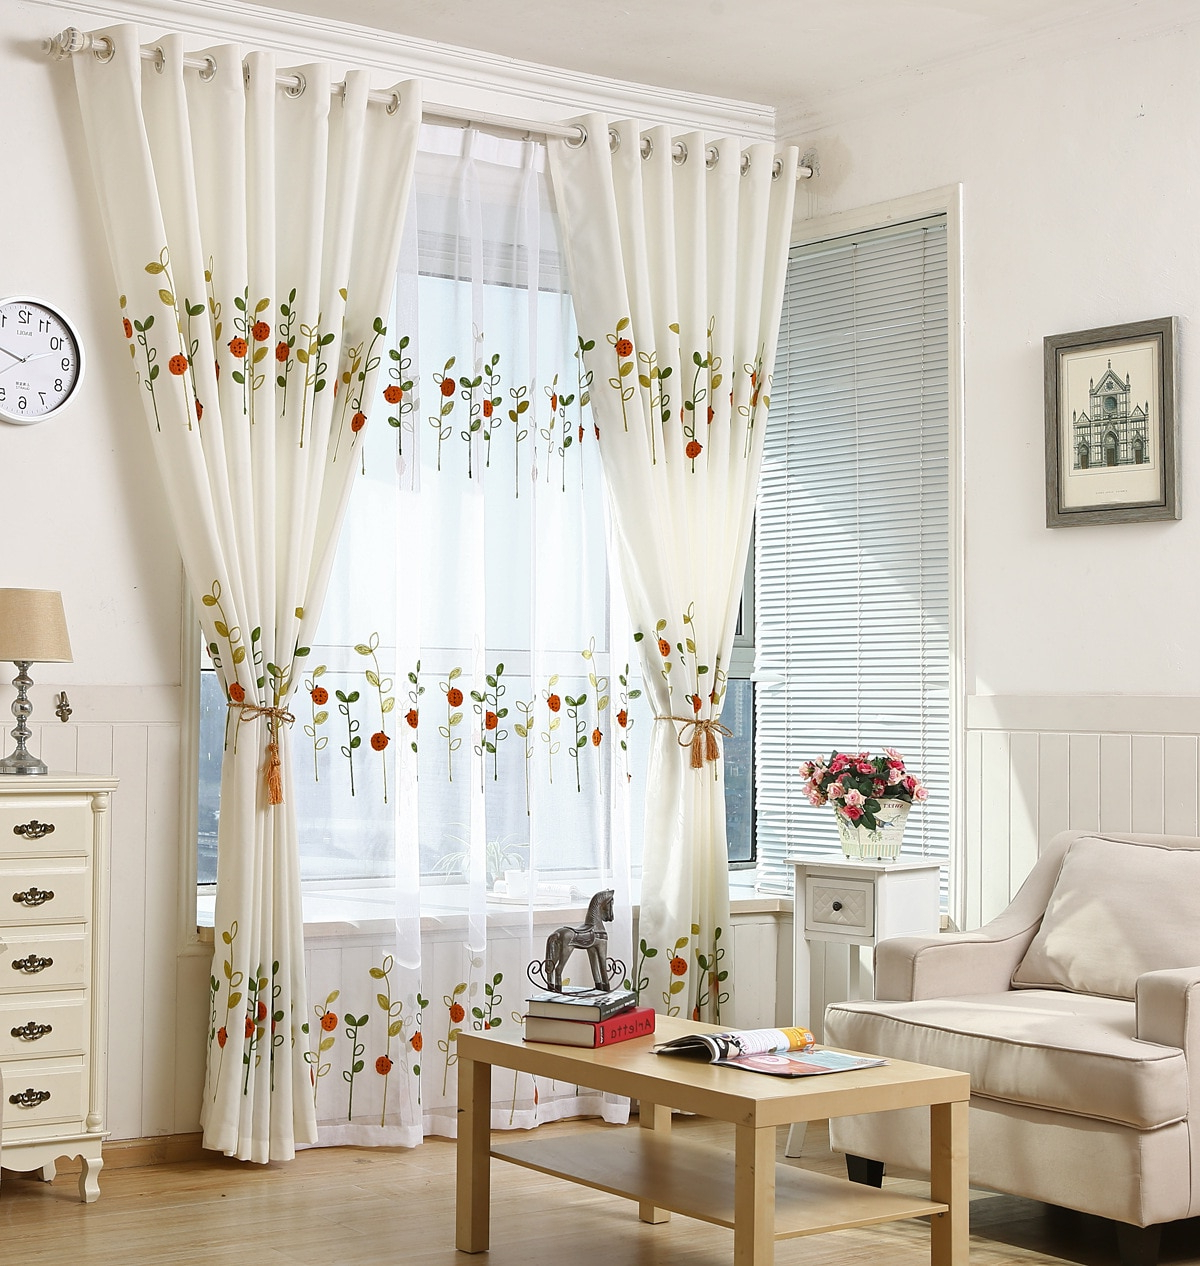 [%us $7.8 35% Off|[slow Soul]playful Little Ladybug Fresh Towel Embroidery Curtain Plant Embroidered Curtains Living Room Children Tulle Curtains In Throughout Newest Embroidered Ladybugs Window Curtain Pieces|embroidered Ladybugs Window Curtain Pieces Intended For Most Up To Date Us $7.8 35% Off|[slow Soul]playful Little Ladybug Fresh Towel Embroidery Curtain Plant Embroidered Curtains Living Room Children Tulle Curtains In|popular Embroidered Ladybugs Window Curtain Pieces Throughout Us $7.8 35% Off|[slow Soul]playful Little Ladybug Fresh Towel Embroidery Curtain Plant Embroidered Curtains Living Room Children Tulle Curtains In|favorite Us $ (View 14 of 20)